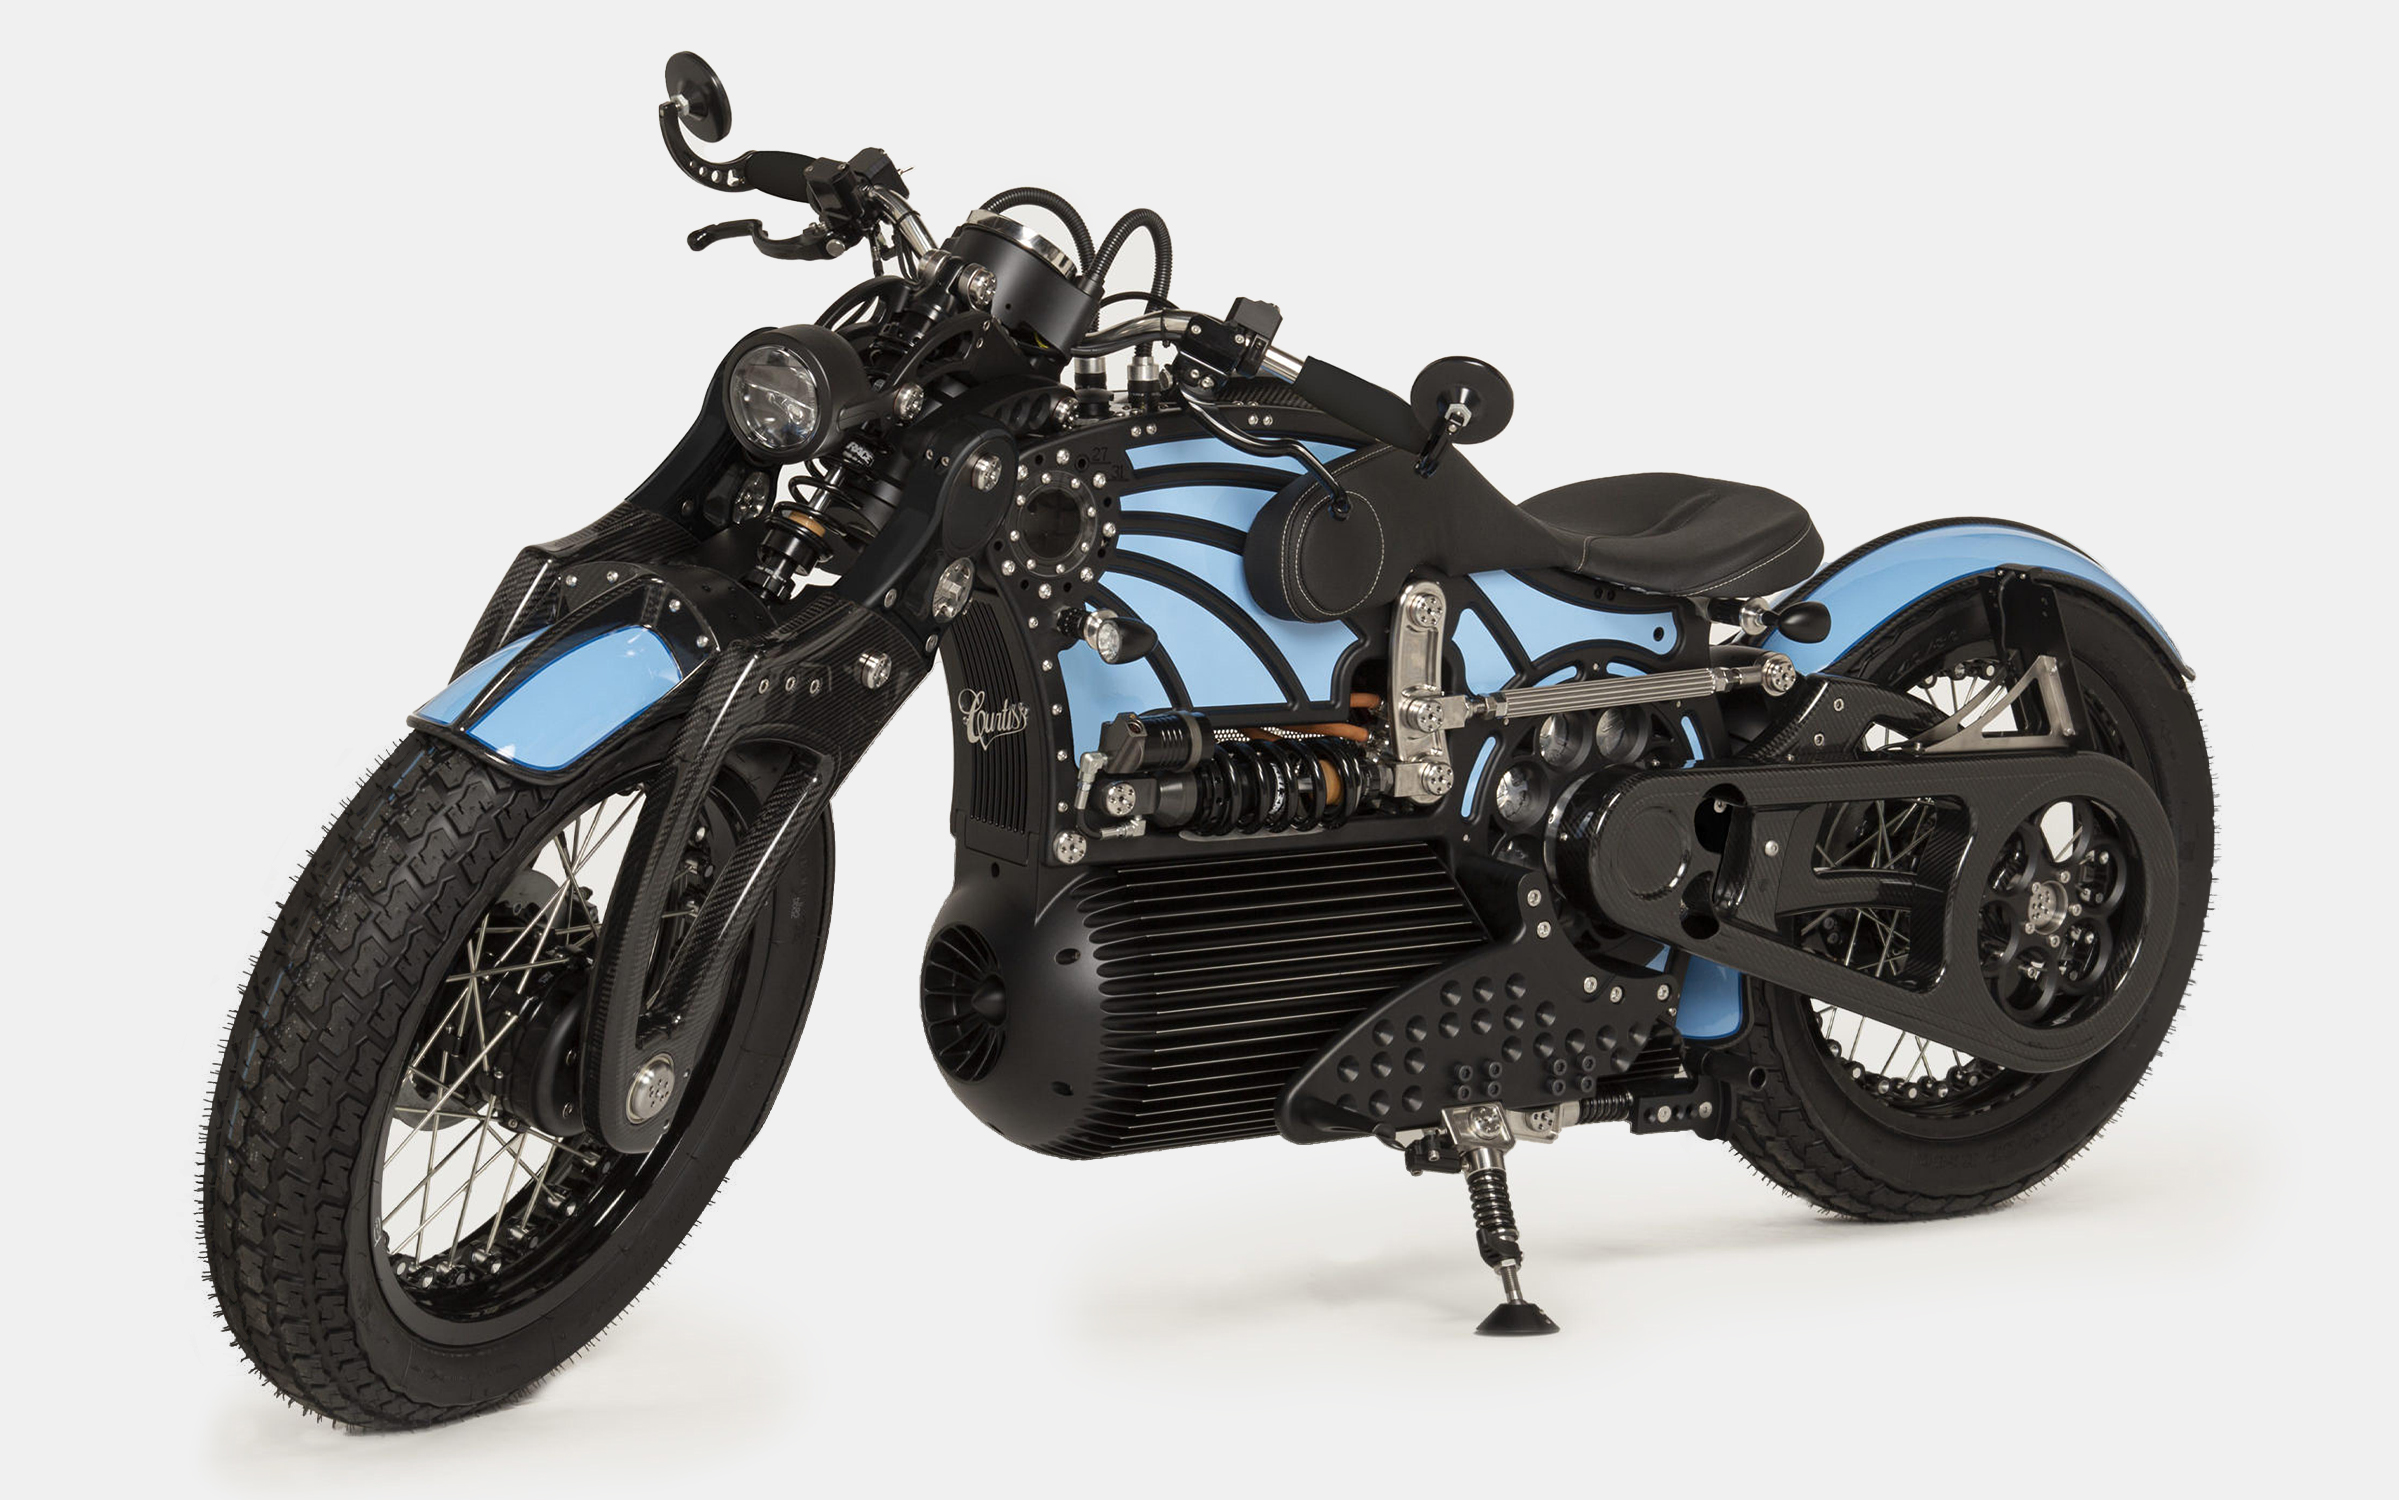 Curtiss The One Motorcycle